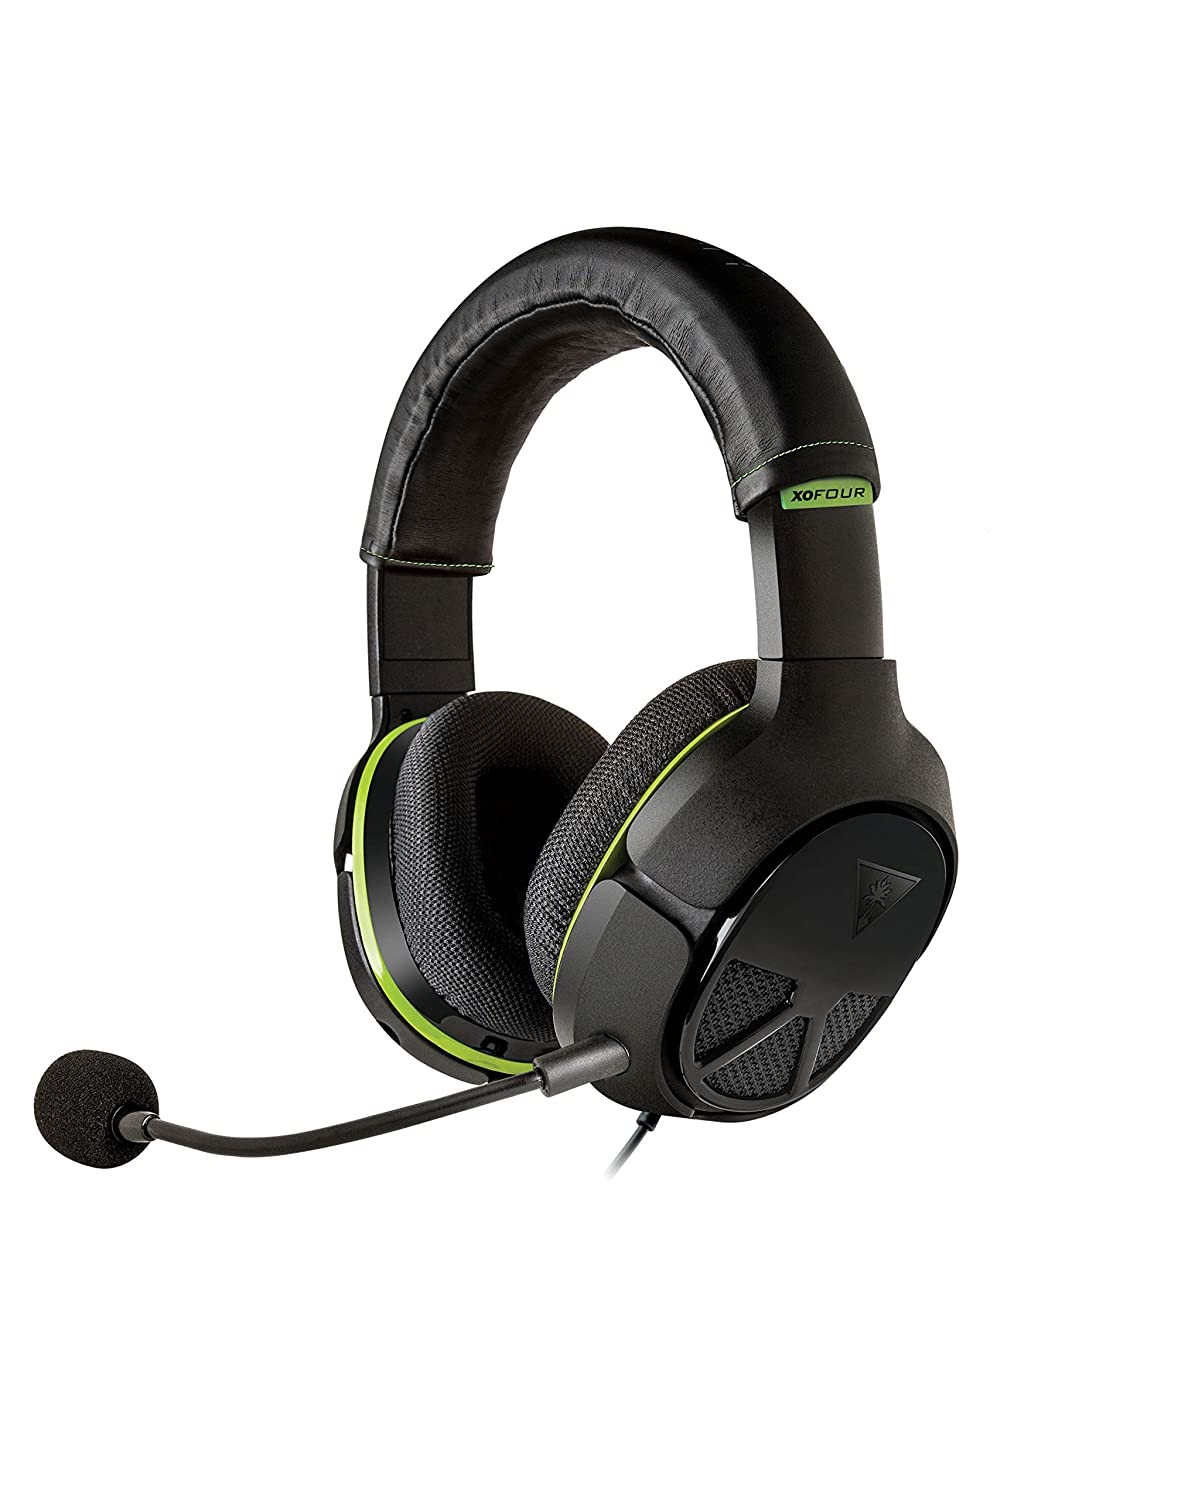 casque de jeu xo four stealth de turtle beach xbox one et xbox one s ebay. Black Bedroom Furniture Sets. Home Design Ideas